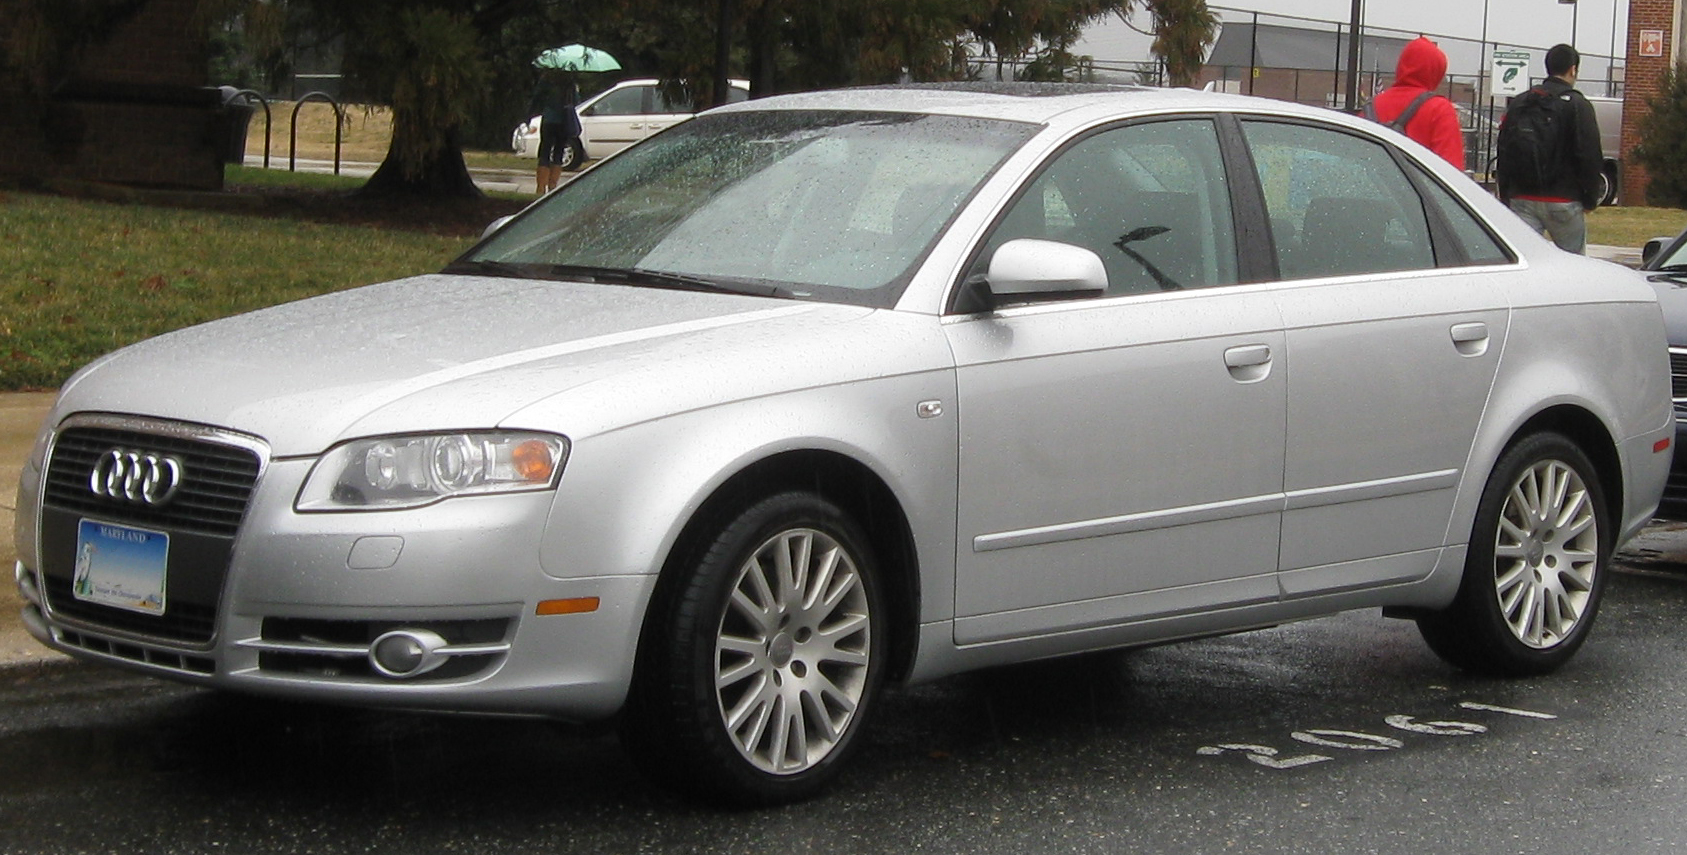 hight resolution of pictures of audi a4 8e 2007 9